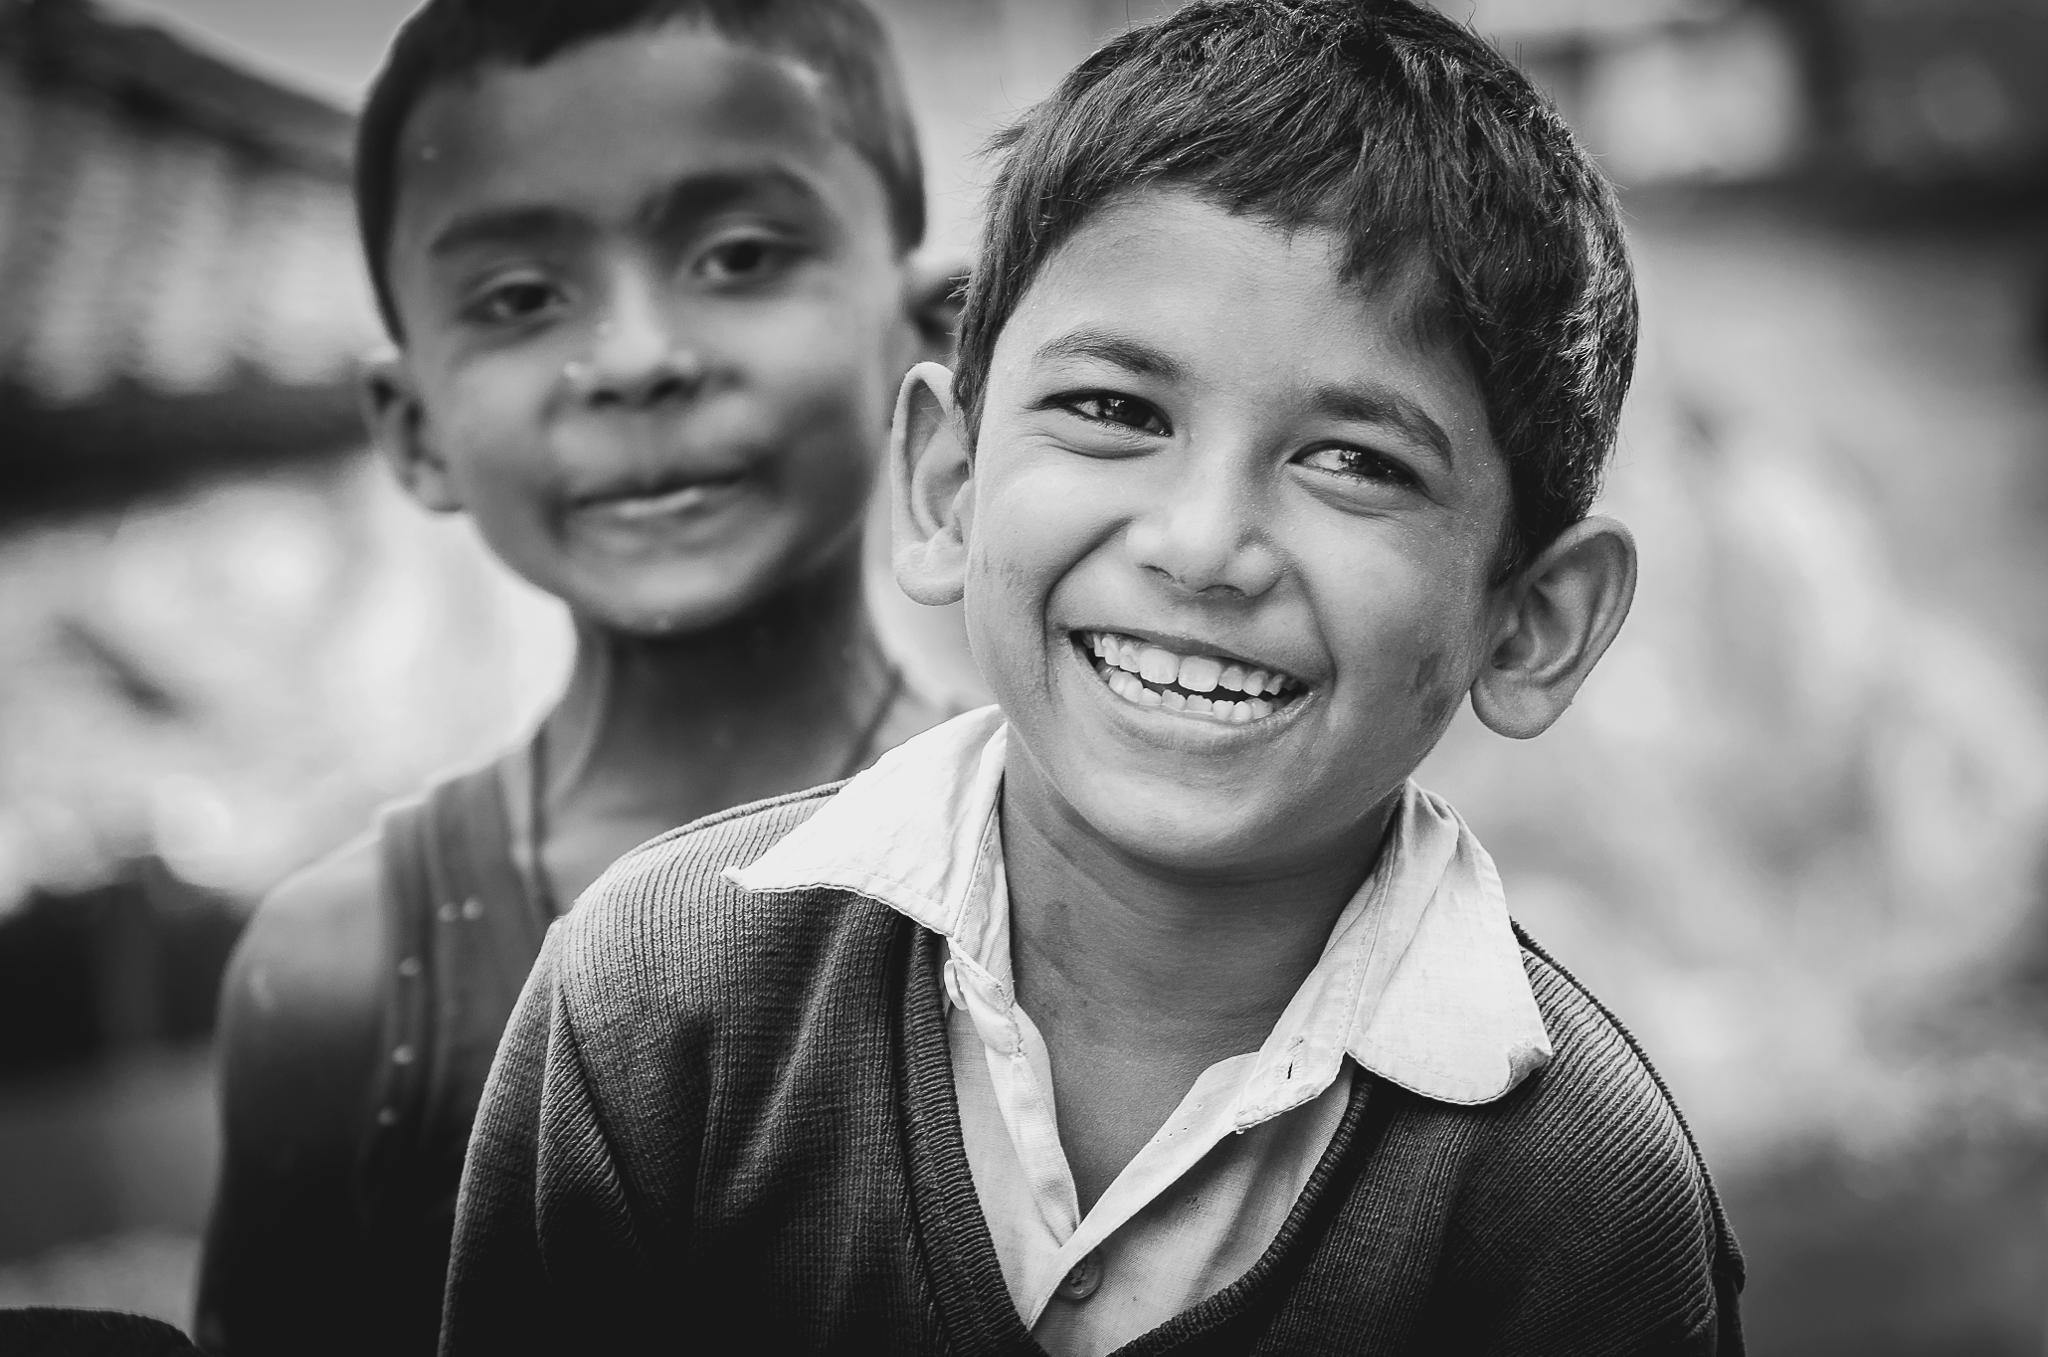 The Happiness by Atul Chauhan